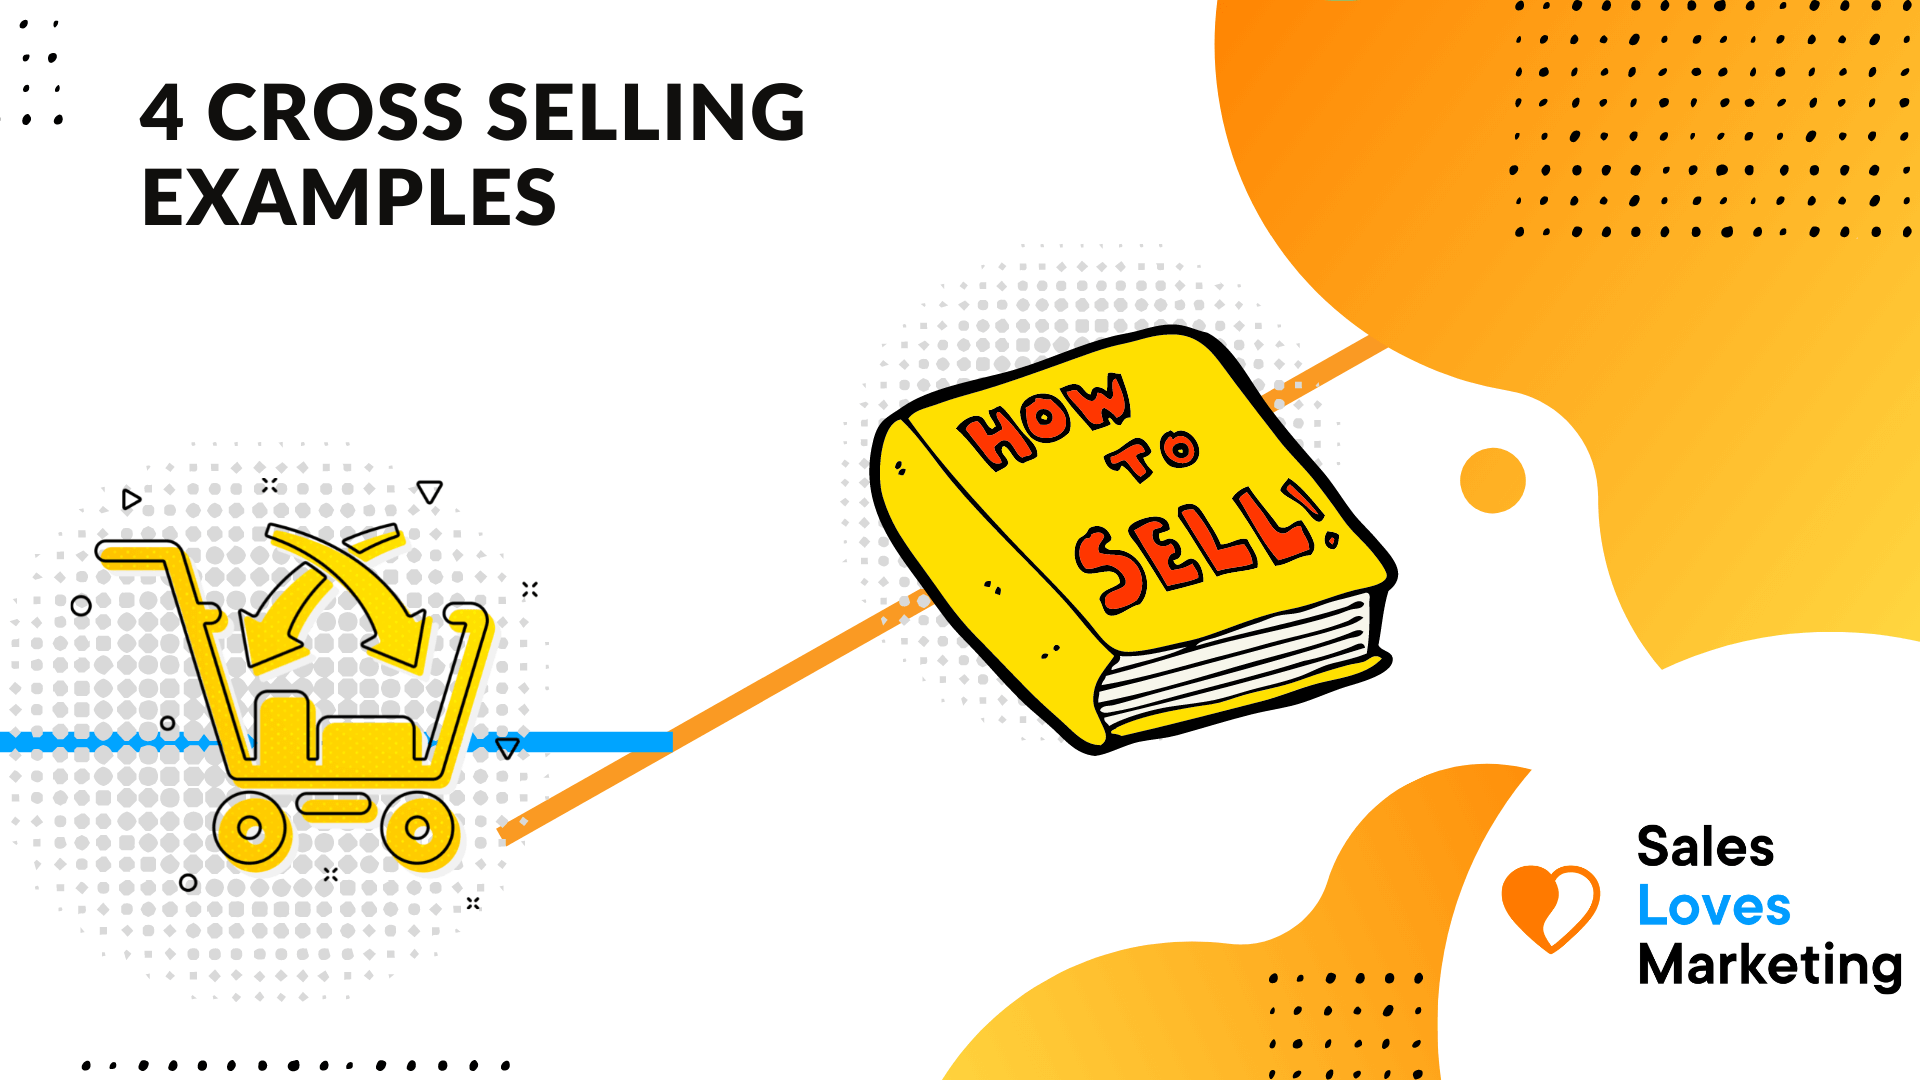 Cross selling examples